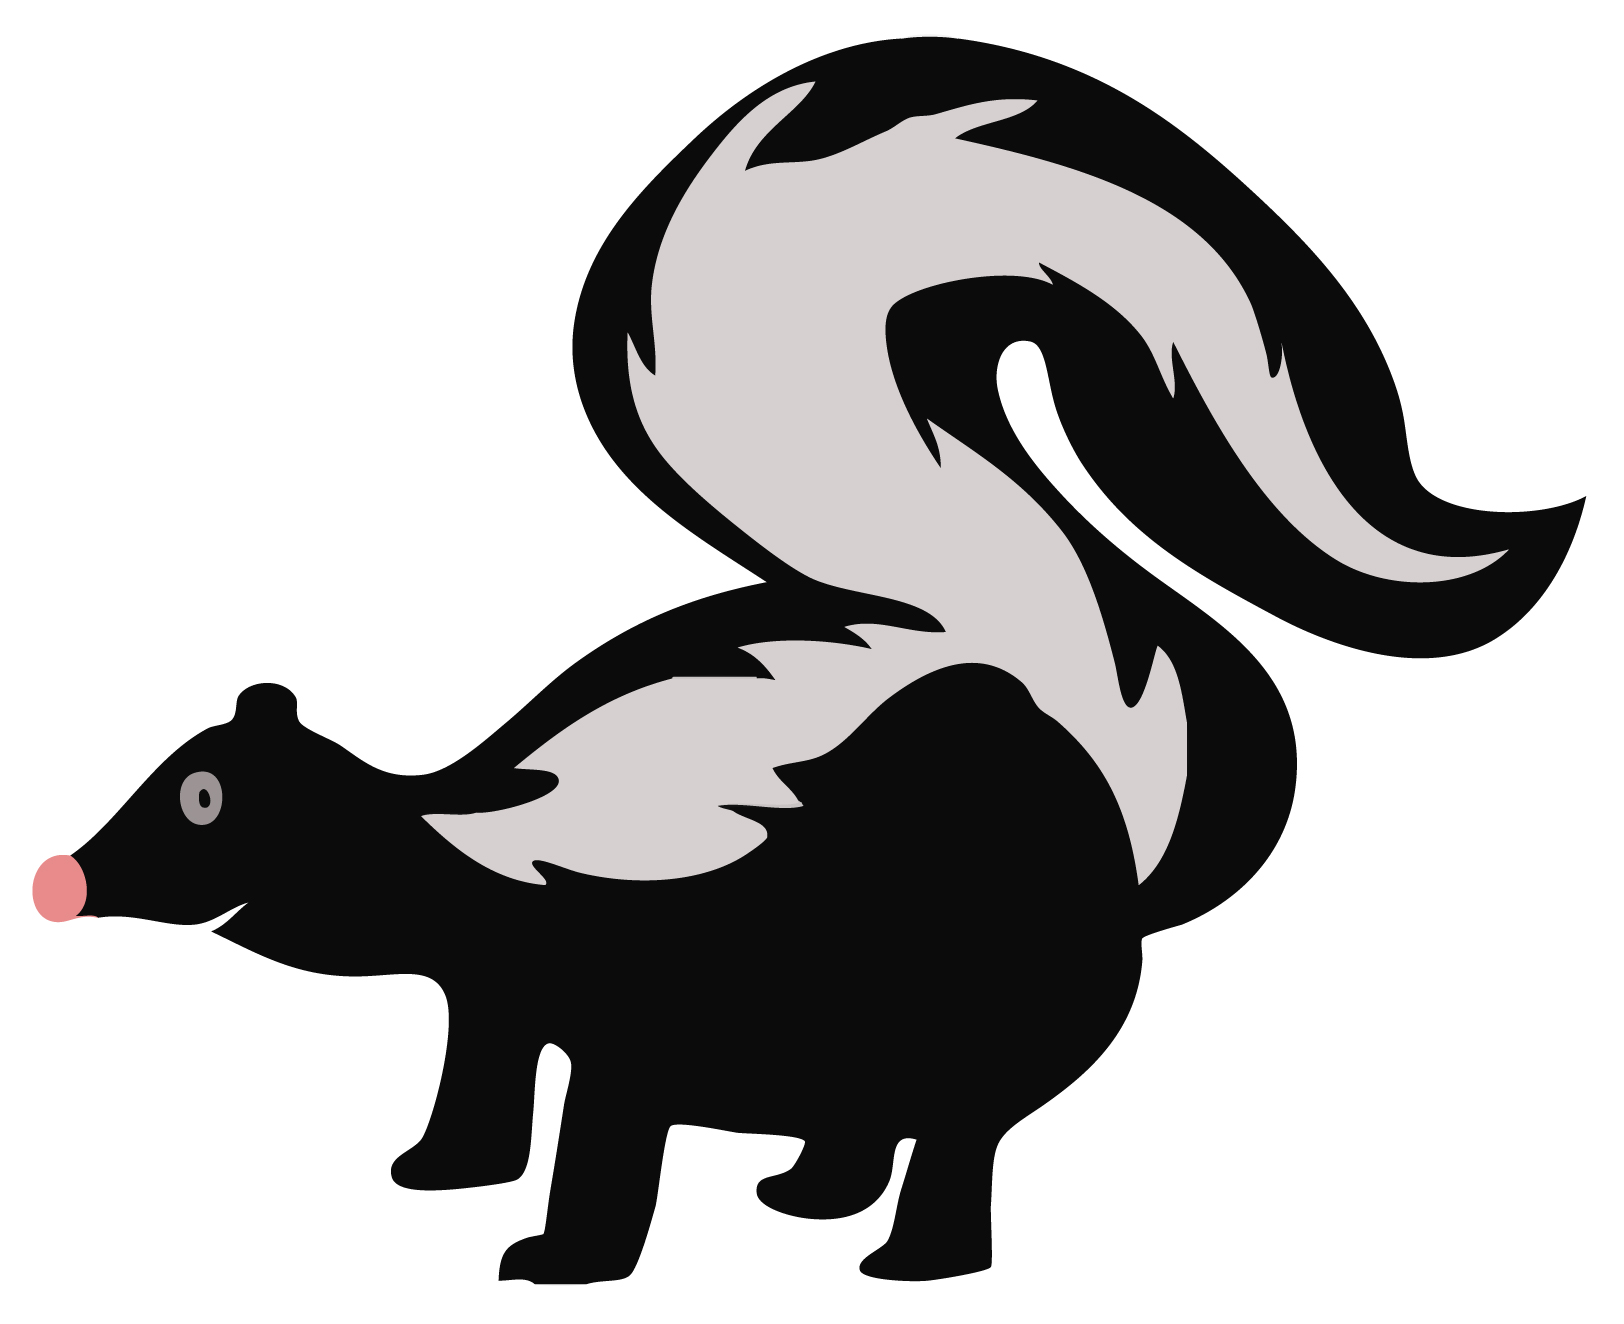 Cute Cartoon Seal Wallpaper Early Learning Resources Skunk Free Early Years And